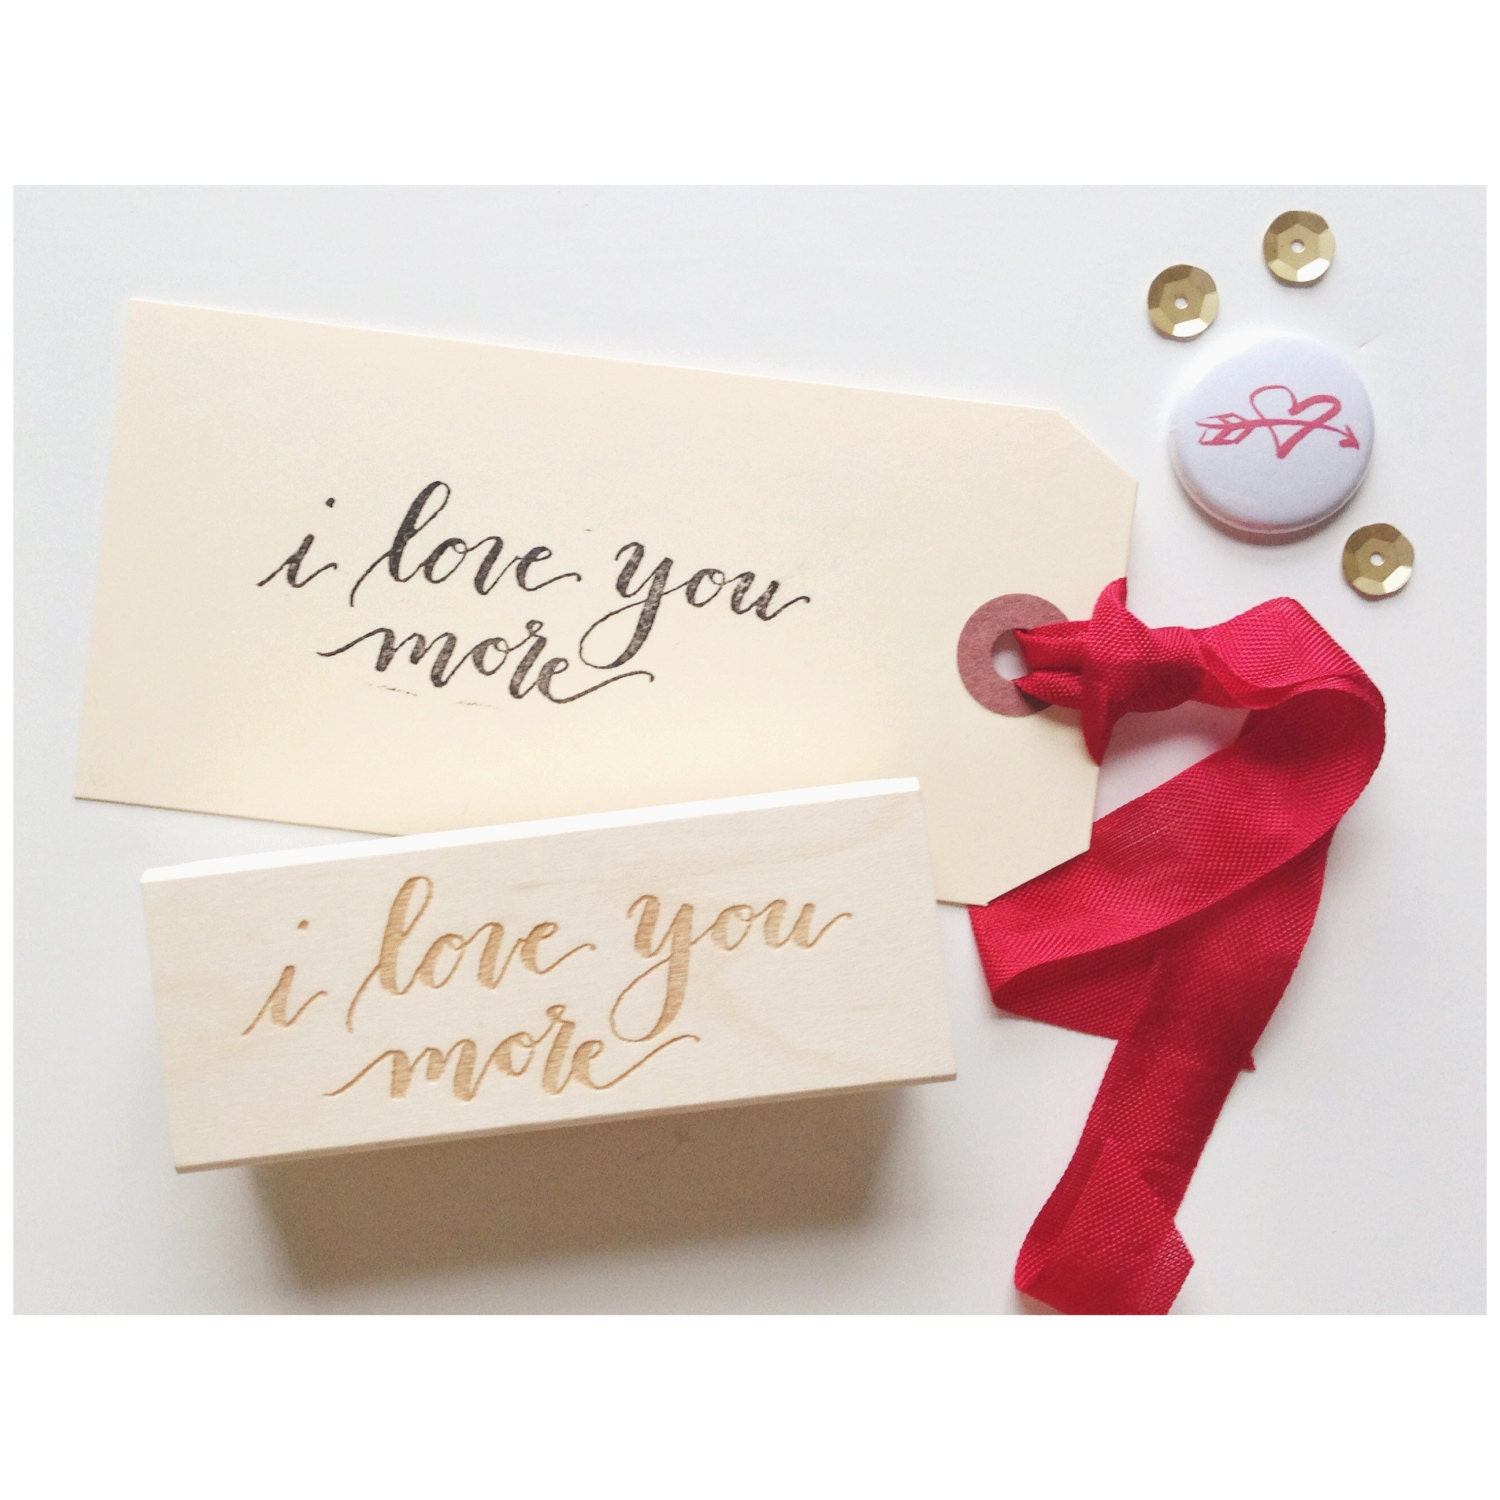 I Love You More Calligraphy Stamp By Letterpaperpaint On Etsy